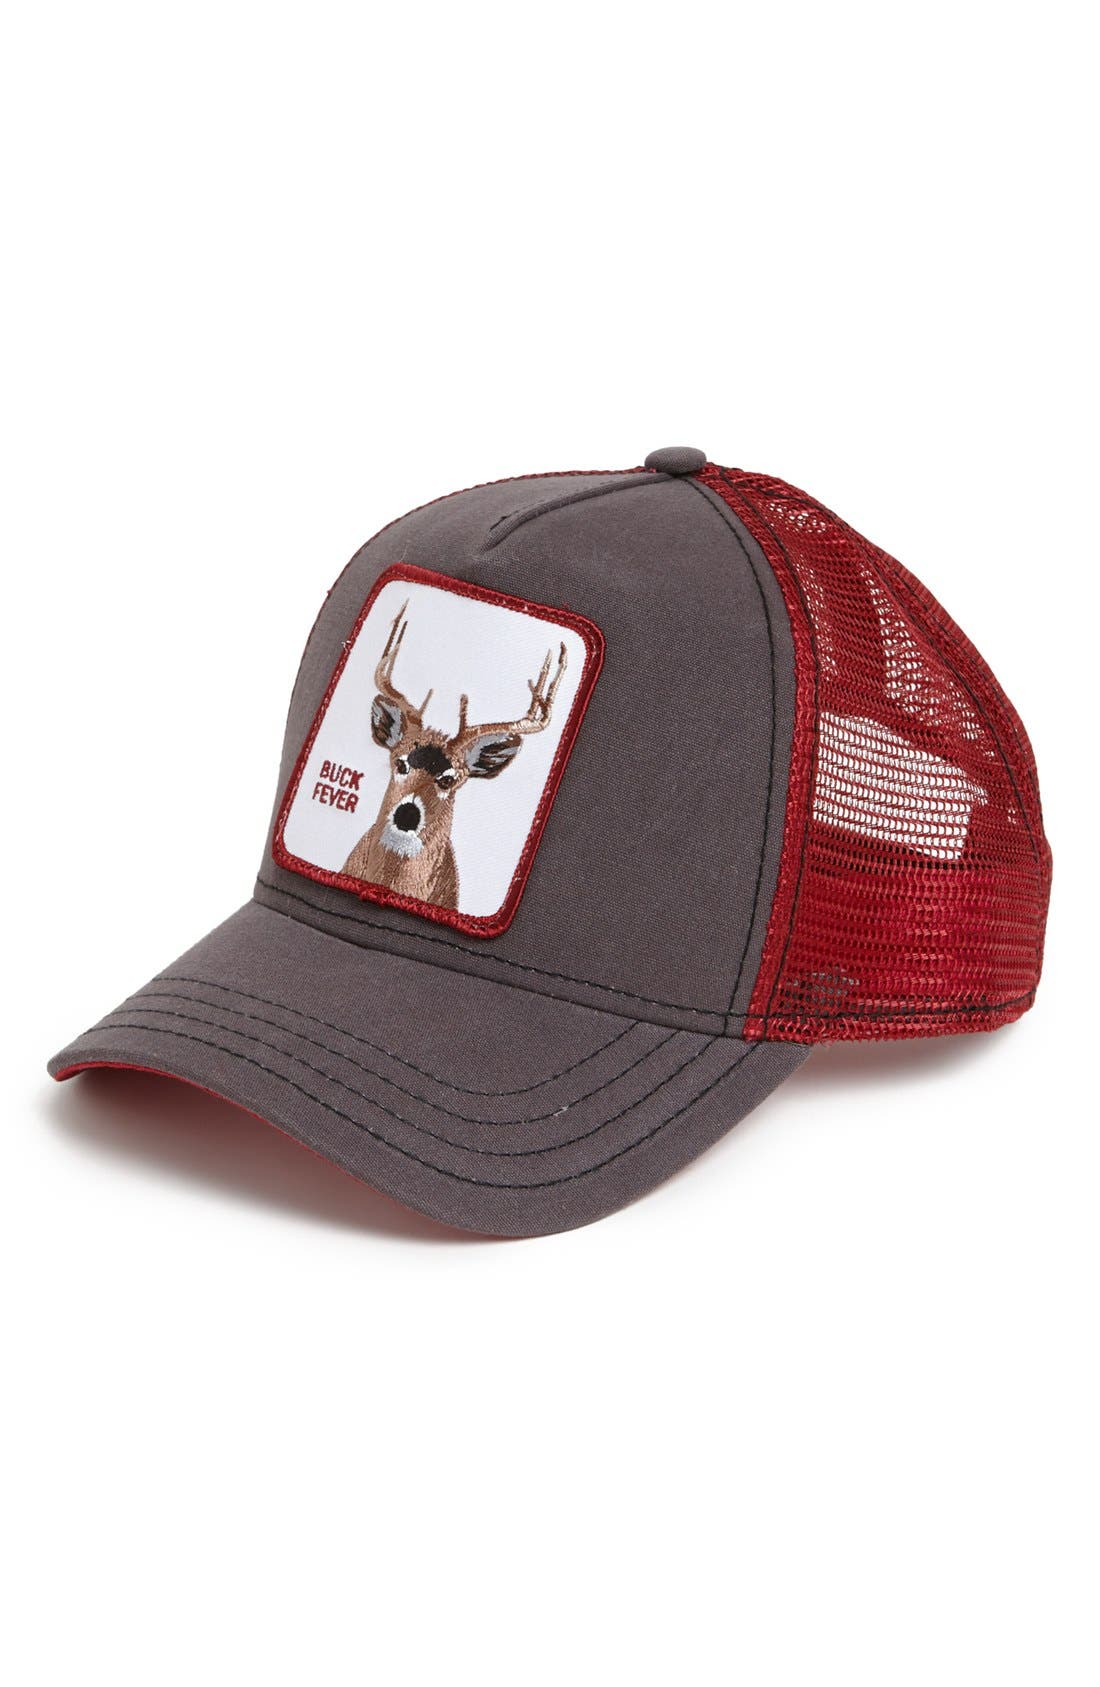 GOORIN BROTHERS 'Animal Farm - Buck Fever' Trucker